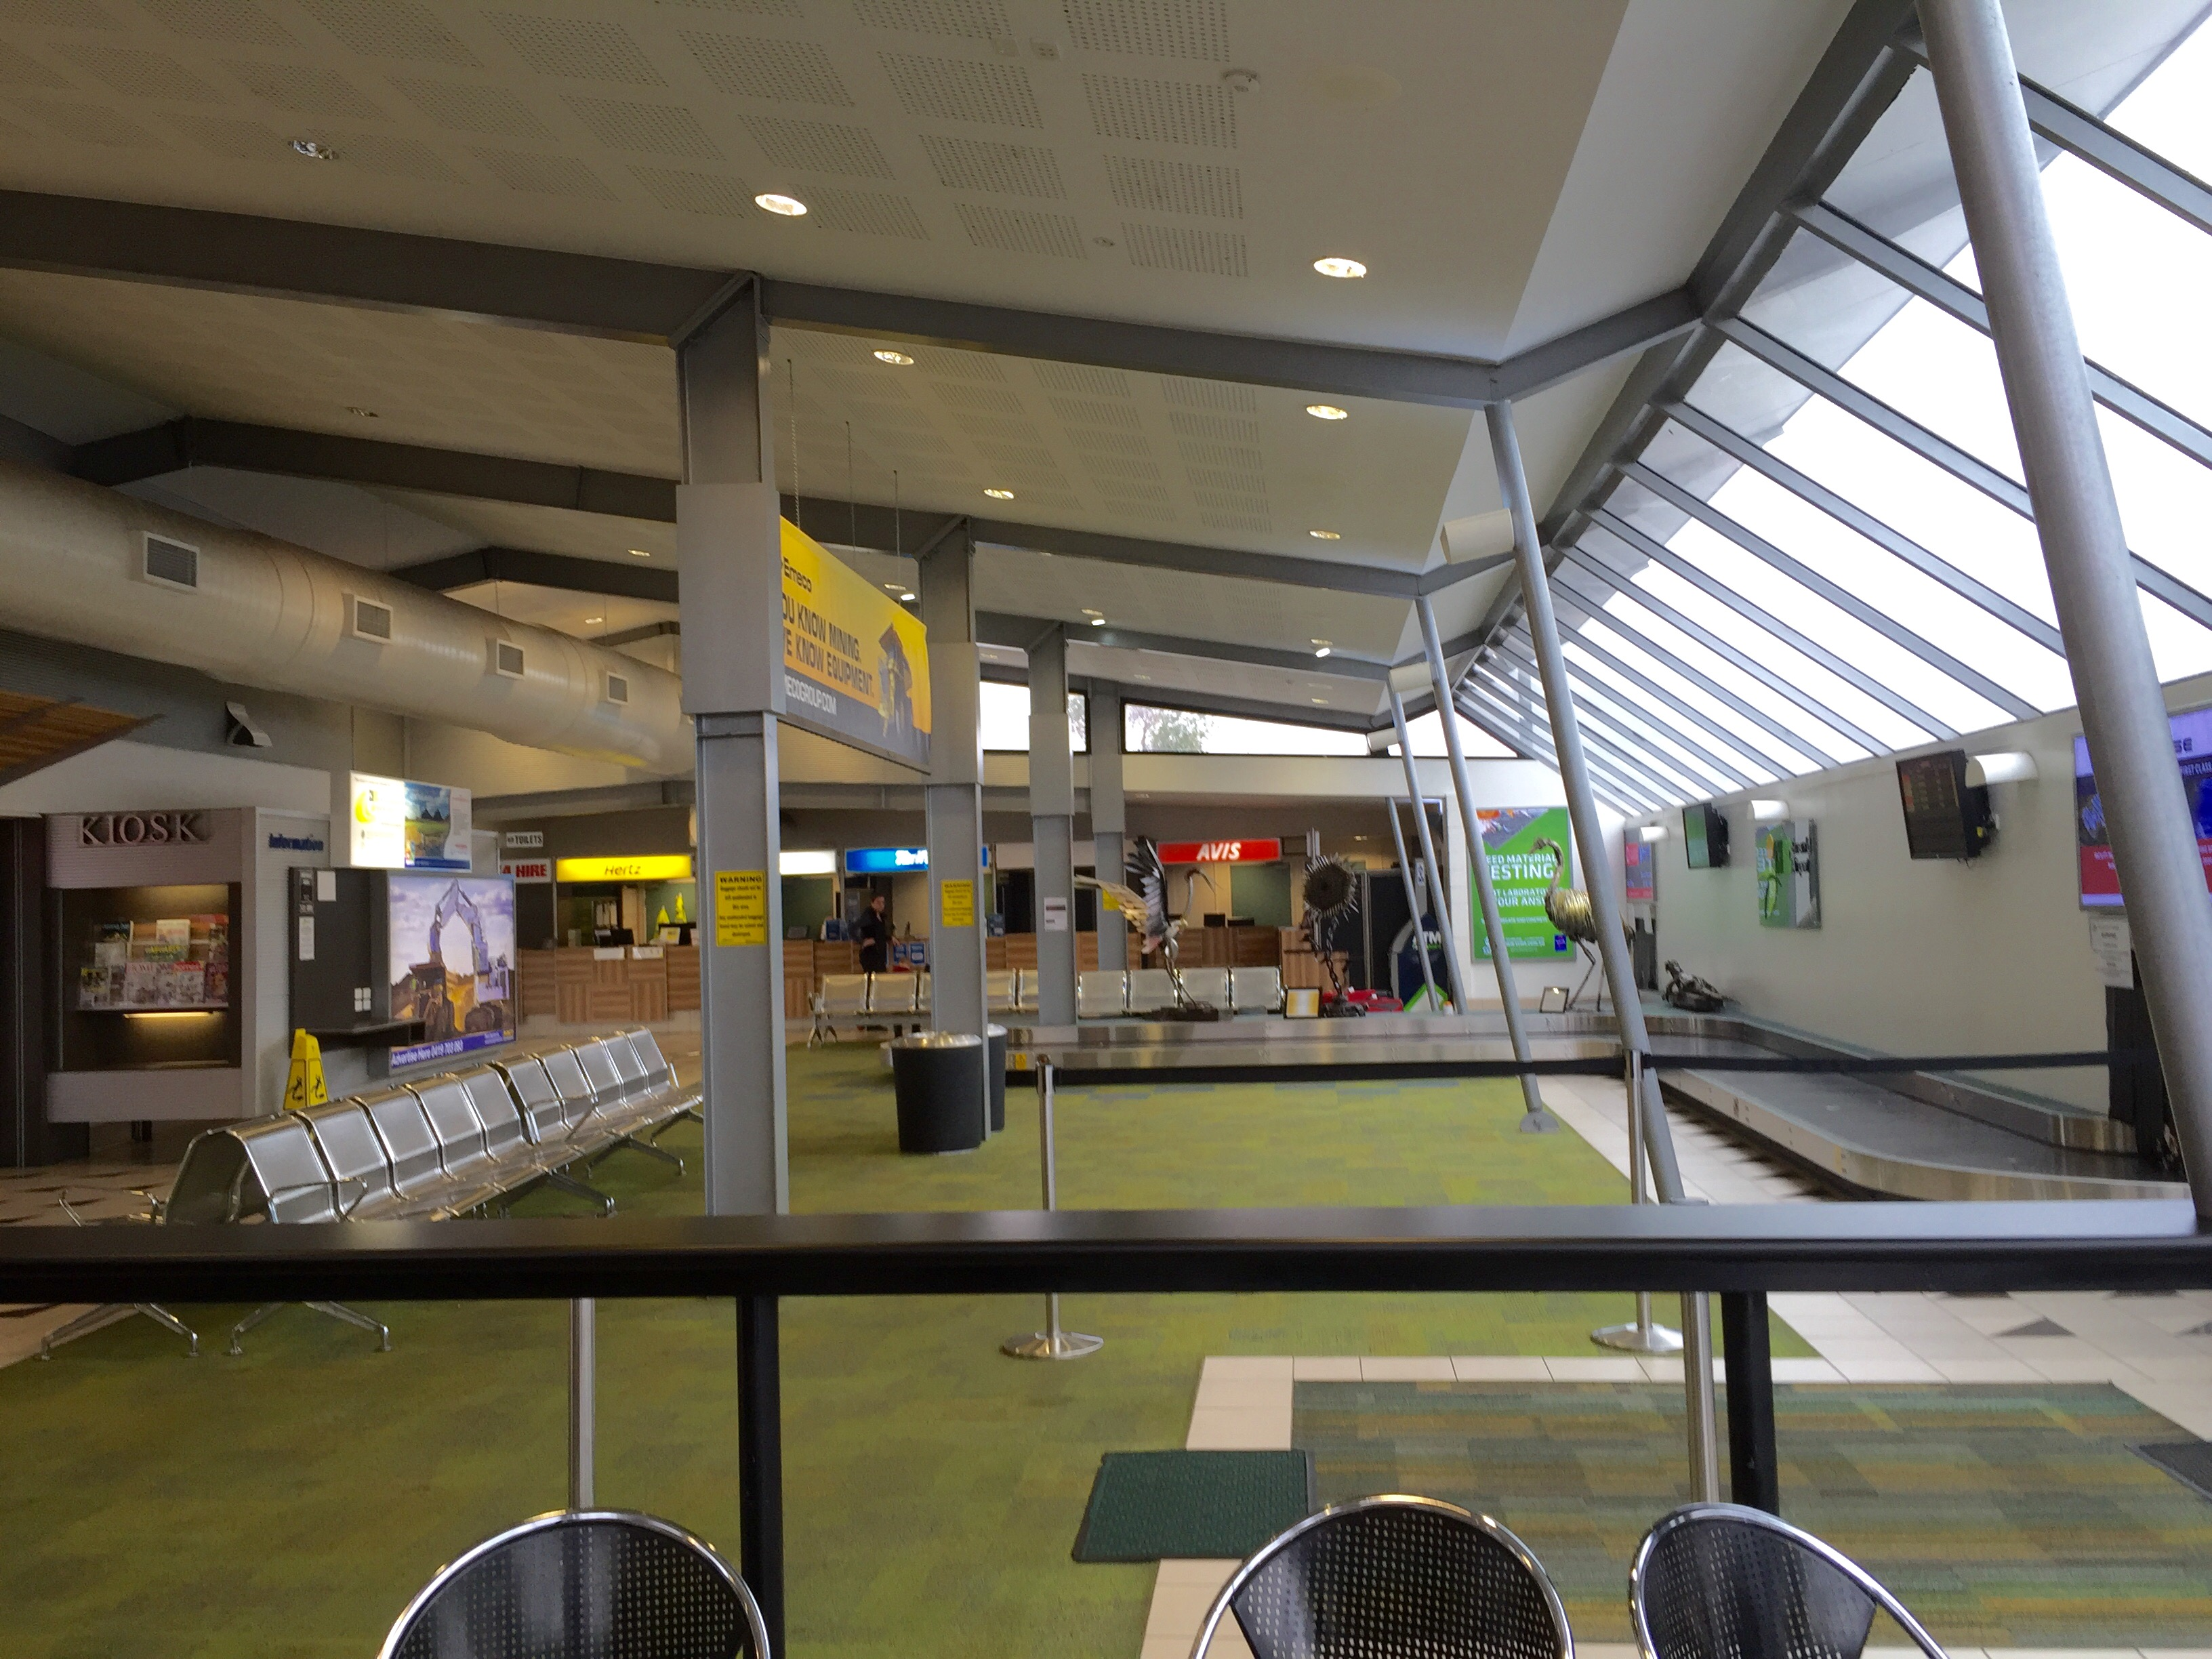 File:Arrival hall of Emerald Airport, Queensland 02 jpg